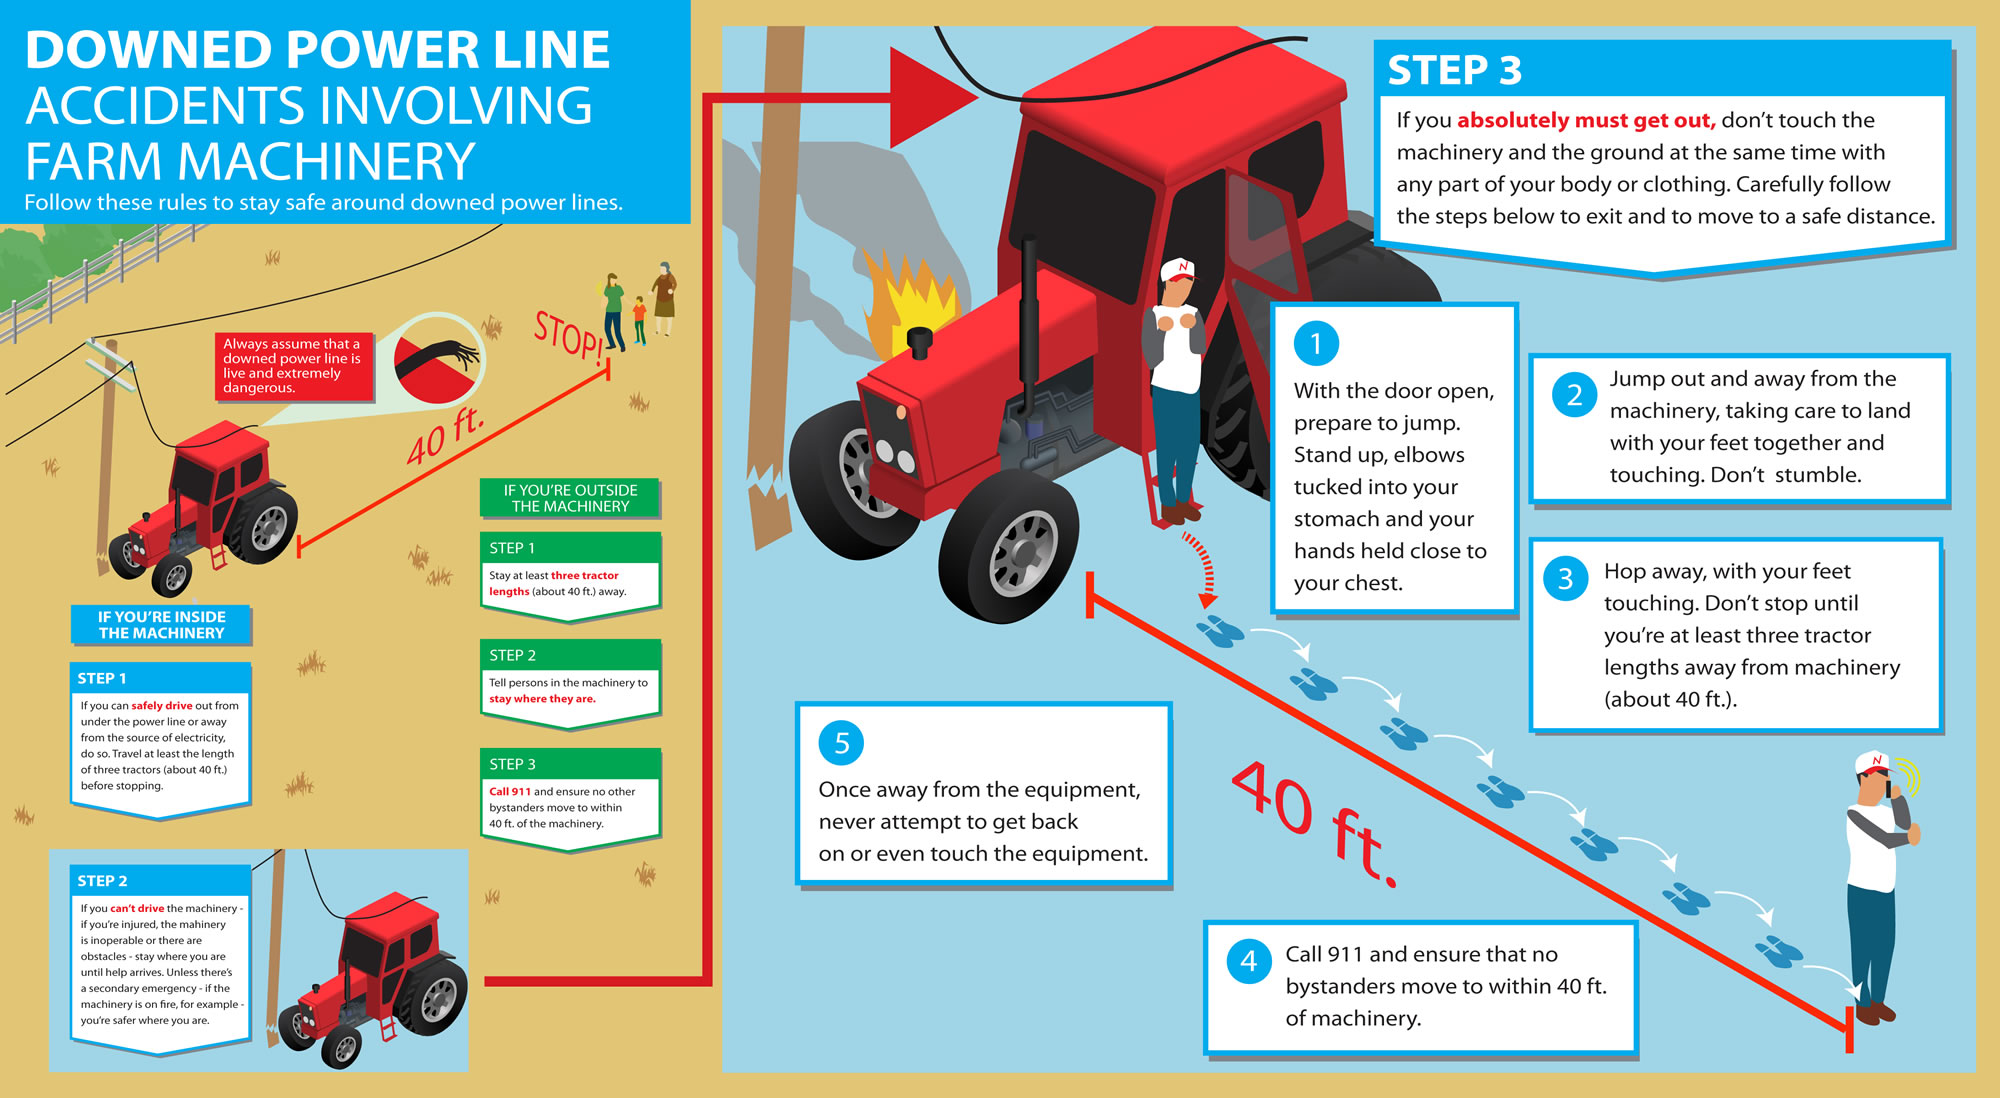 Steps on what to do if you are in an accident involving farm machinery